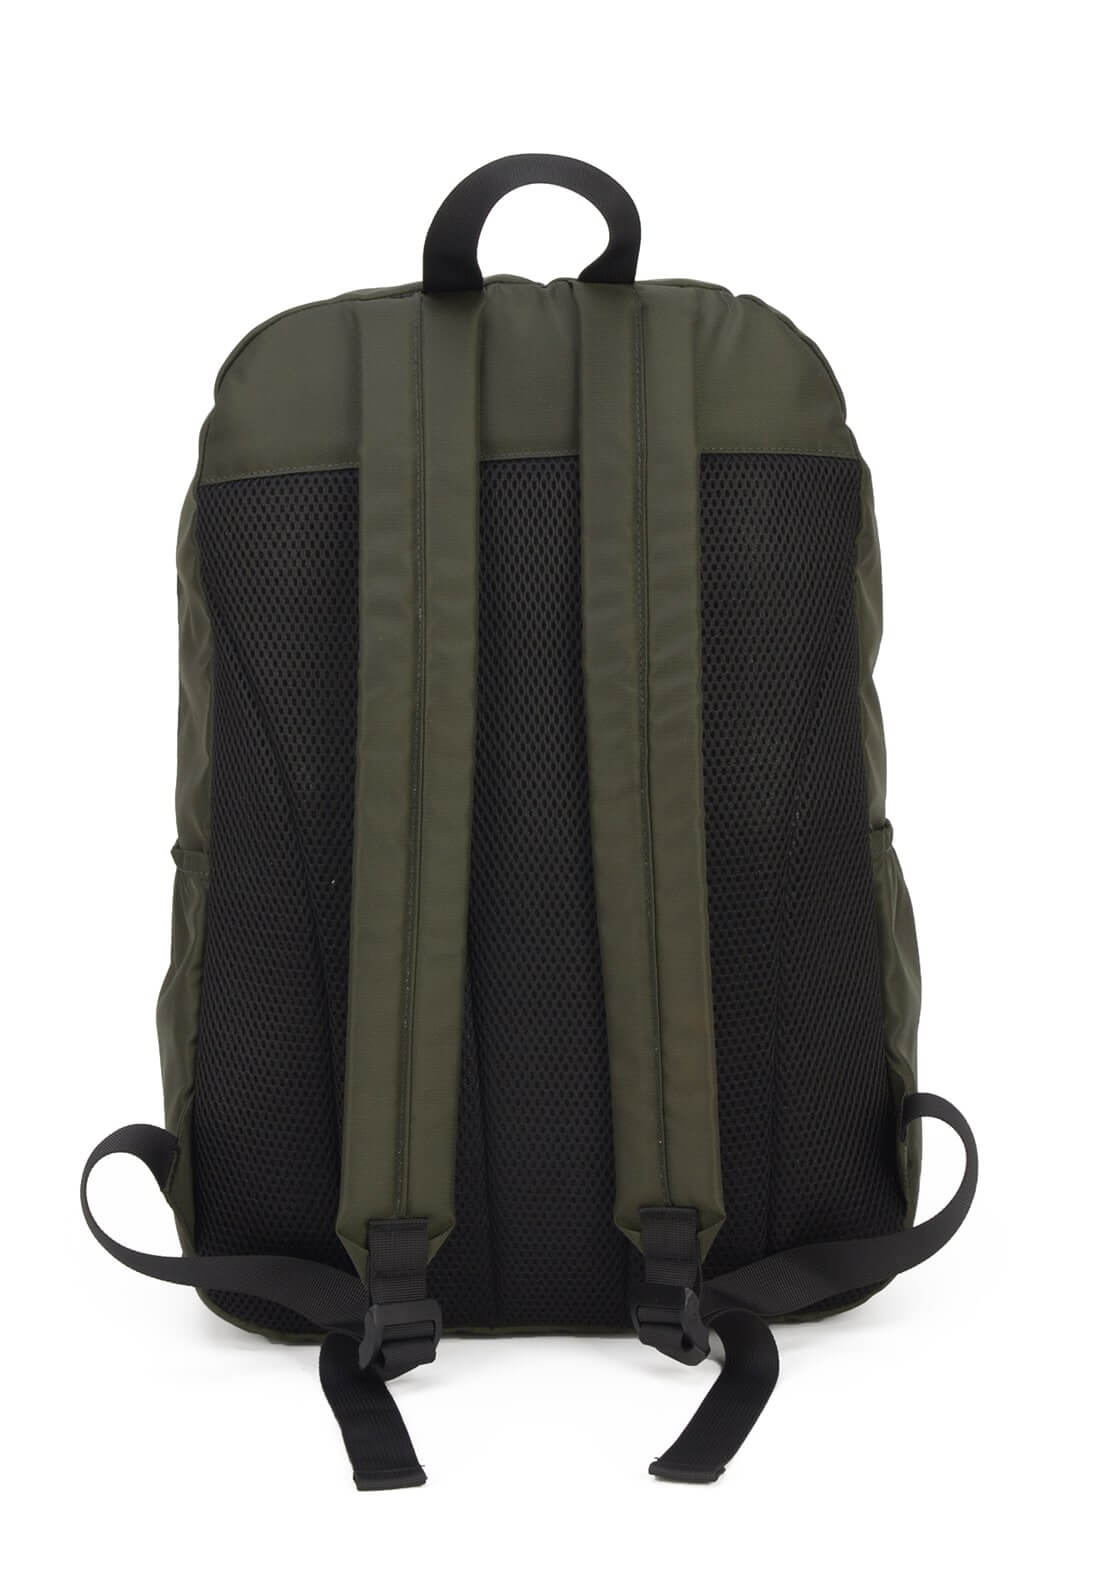 Mochila National Geografic Notebook Verde Com Preto Original